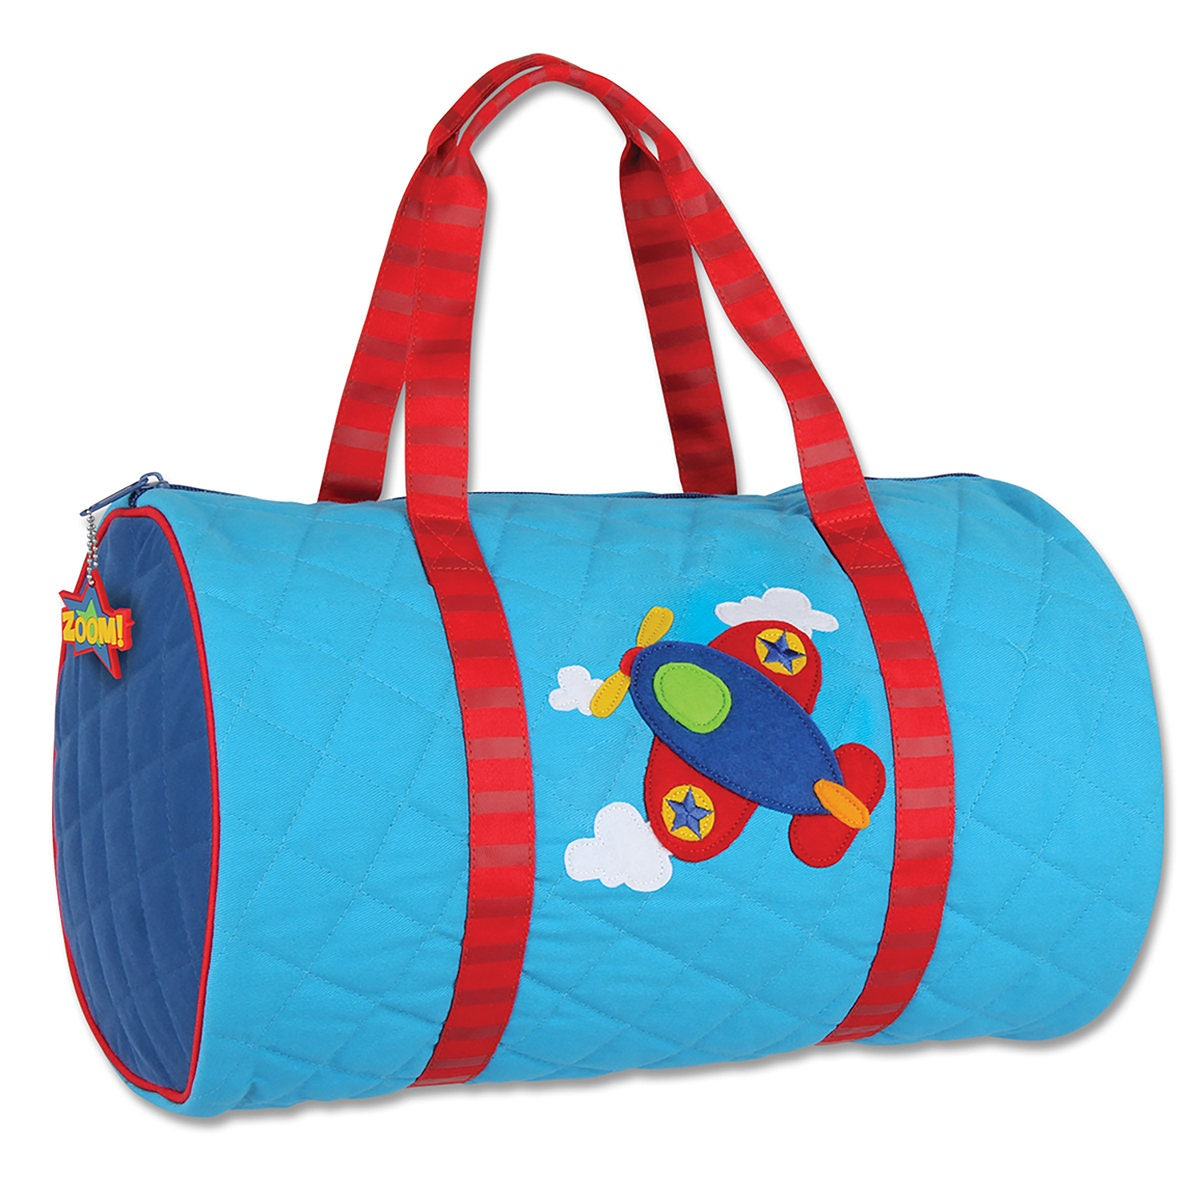 c279039bbd Airplane Quilted Duffle Bag Stephen Joseph Children s Duffle Bag Overnight  Pirate Dance Gymnastics Swim Cute Pirate Applique Bag Boy Girl